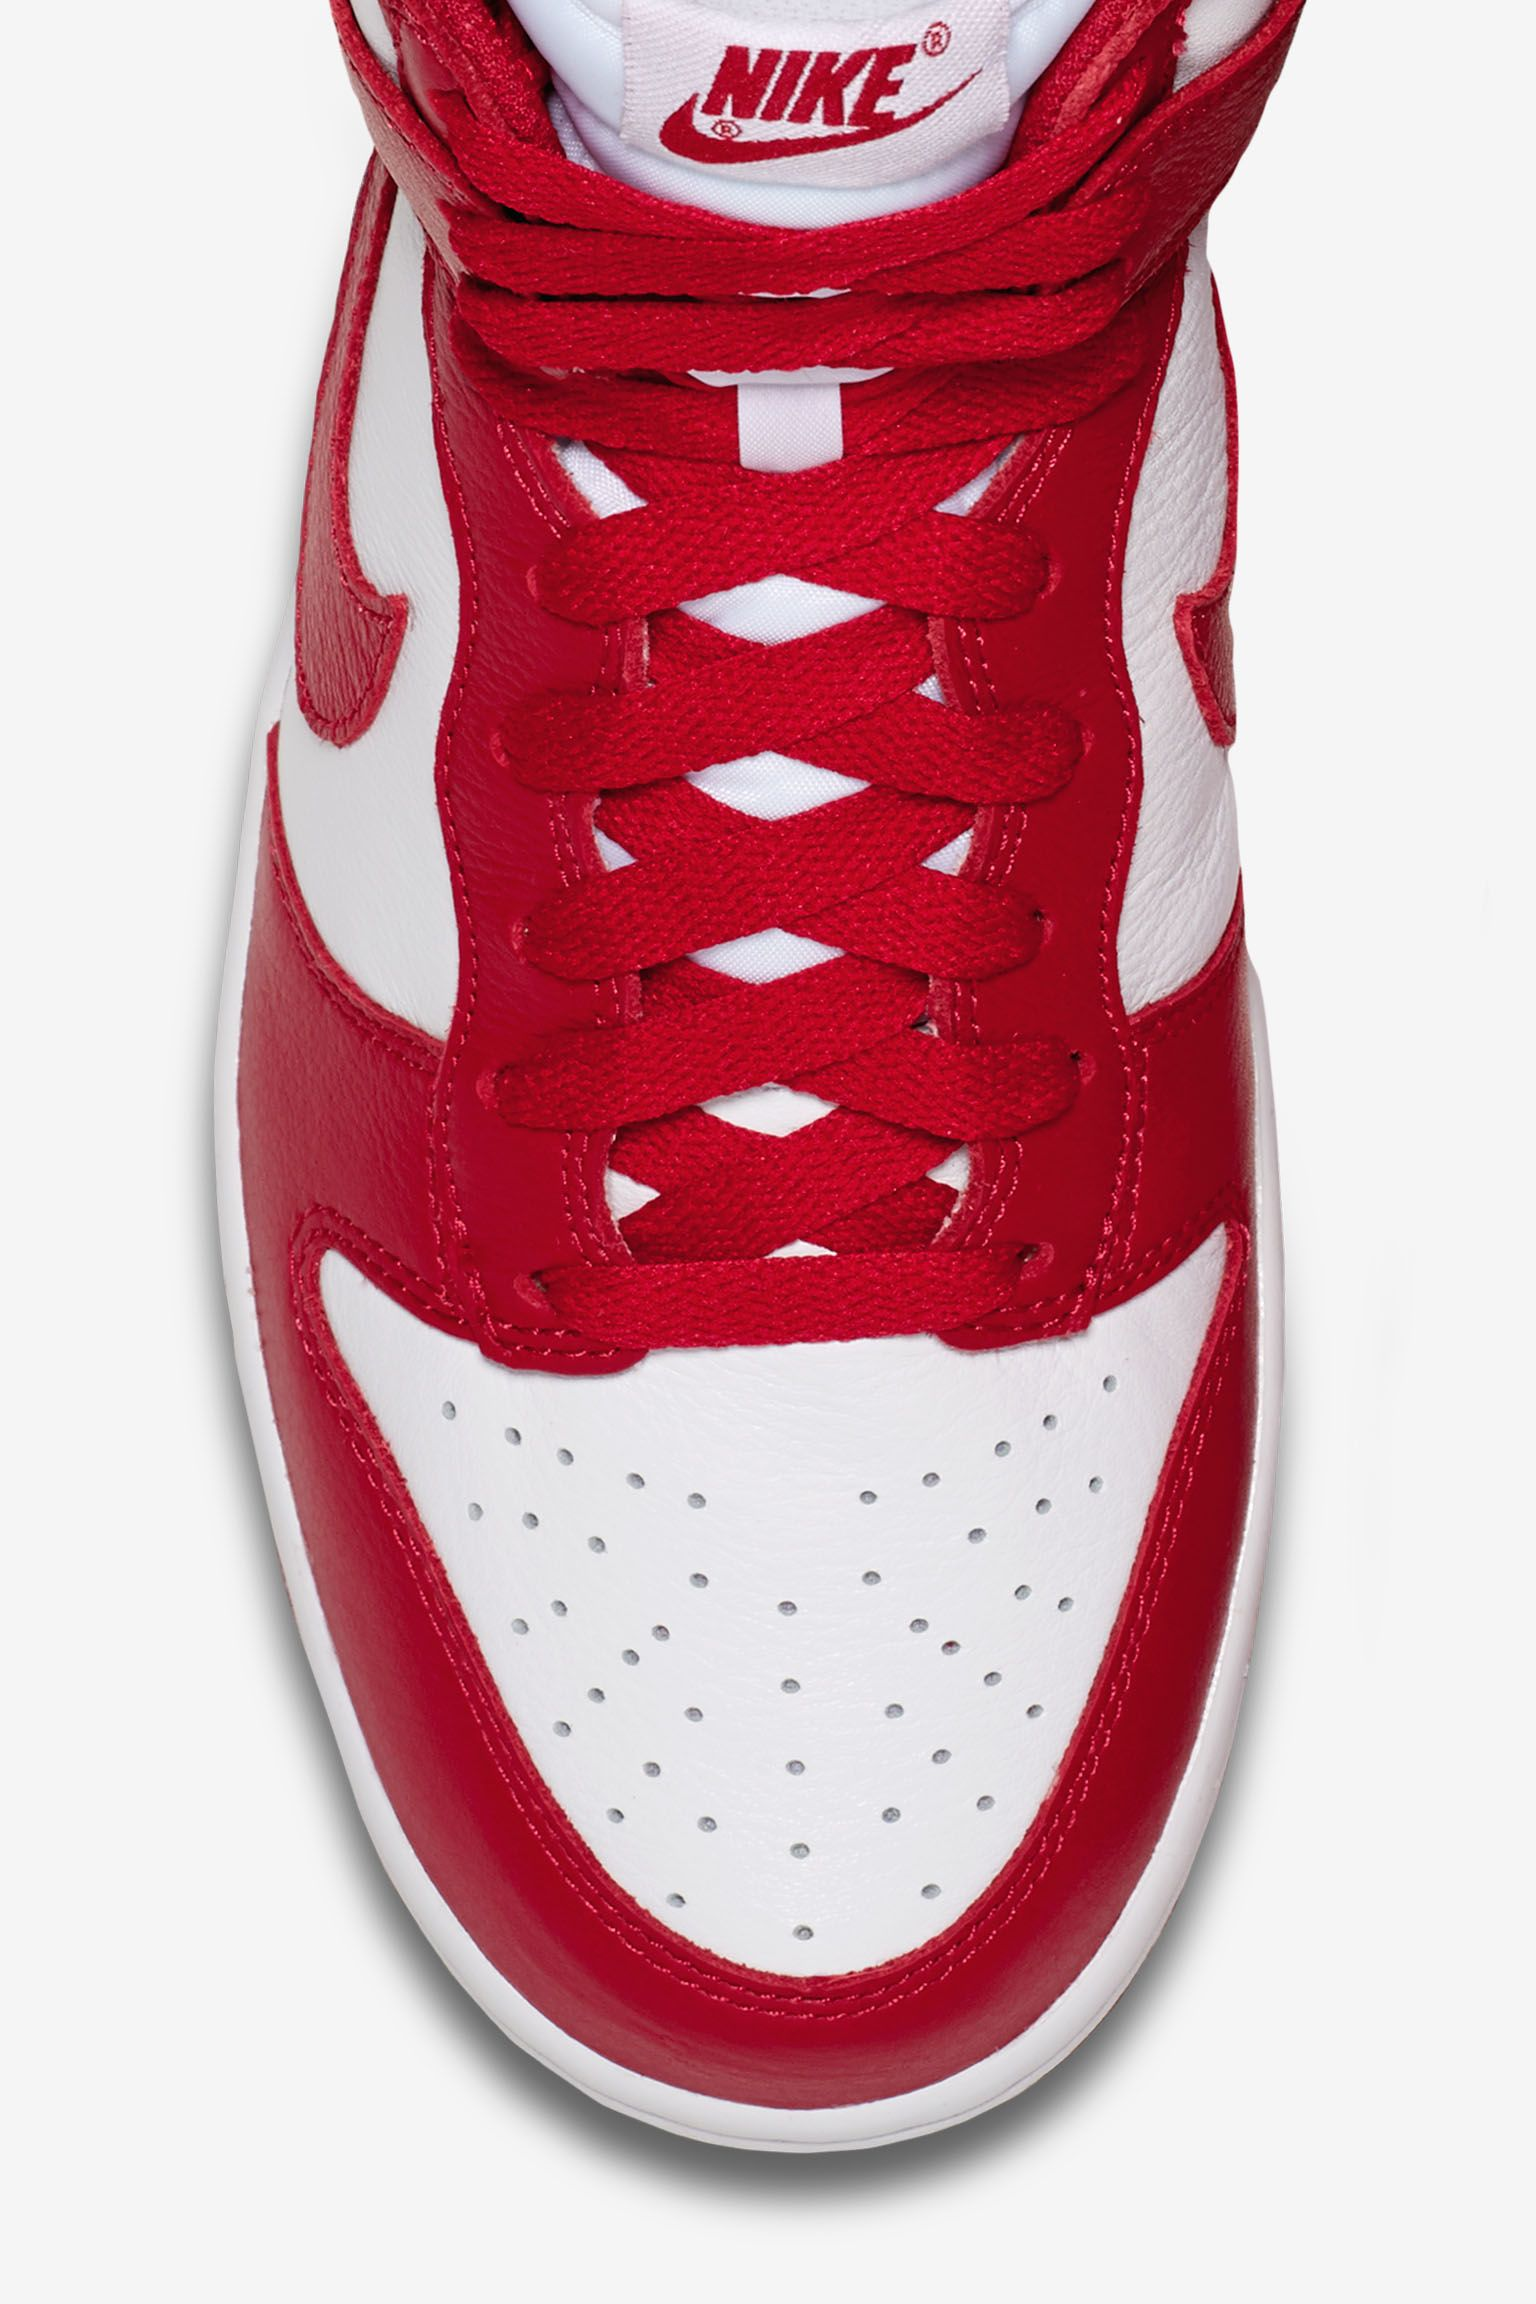 Nike Dunk College Colors 'Red & White'